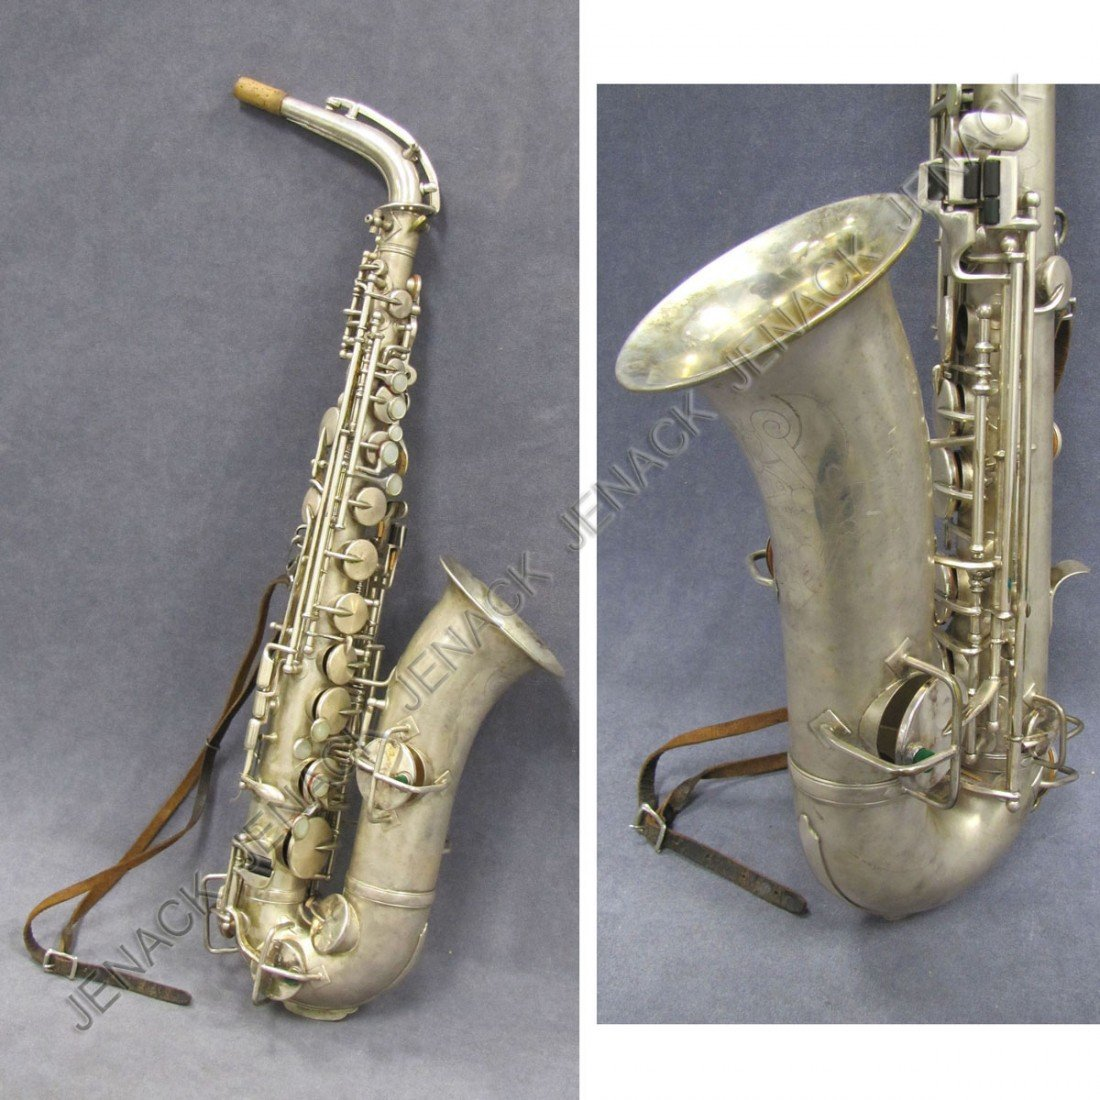 15: KING (H.N. WHITE) SILVER PLATED LOW PITCH SAX